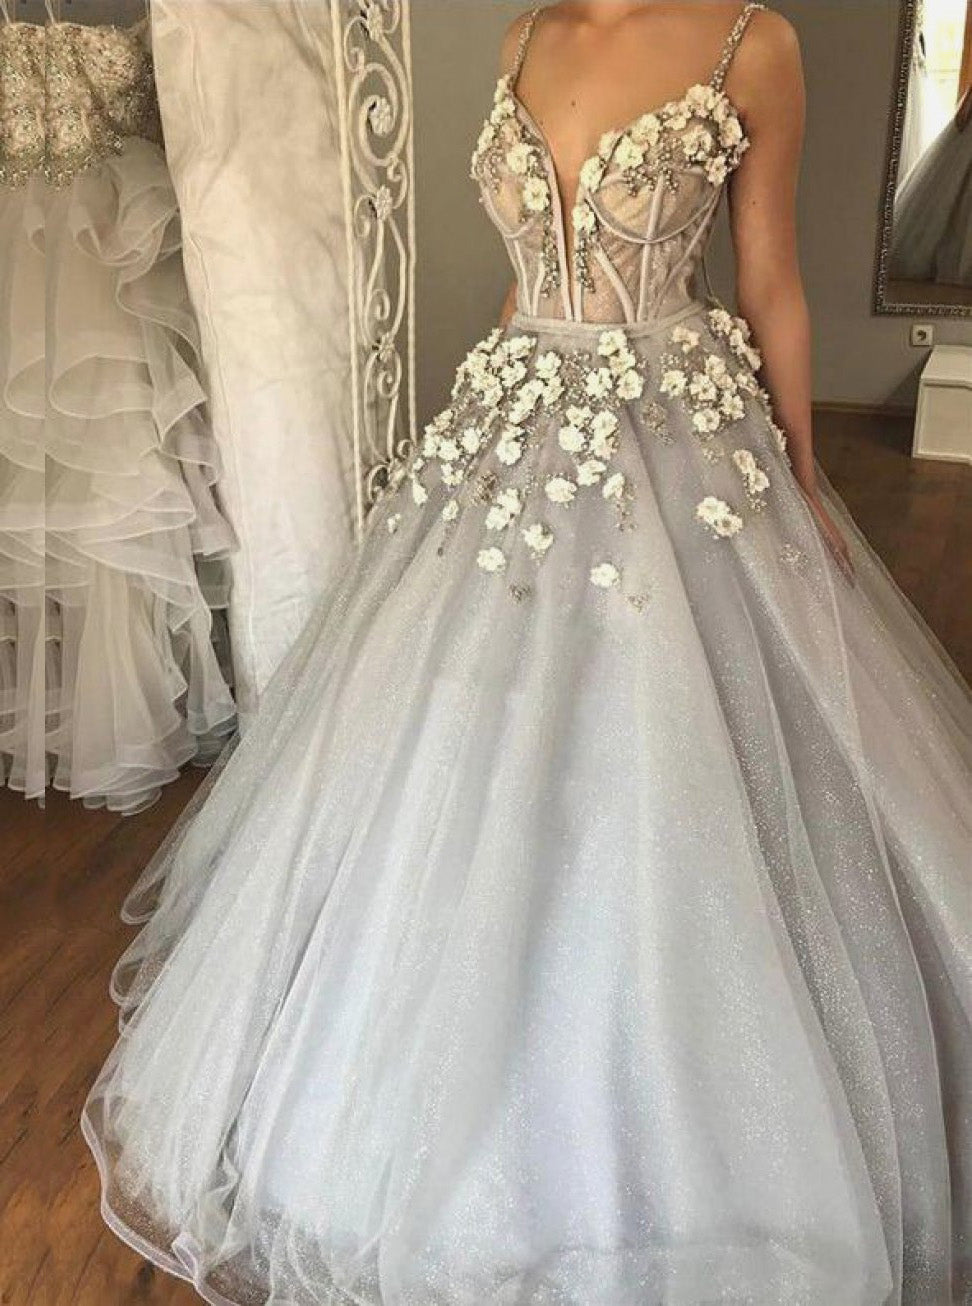 2019 Sparkly Dusty Silver 3D Floral Prom Dress, Ball Gown Wedding Dress OW342